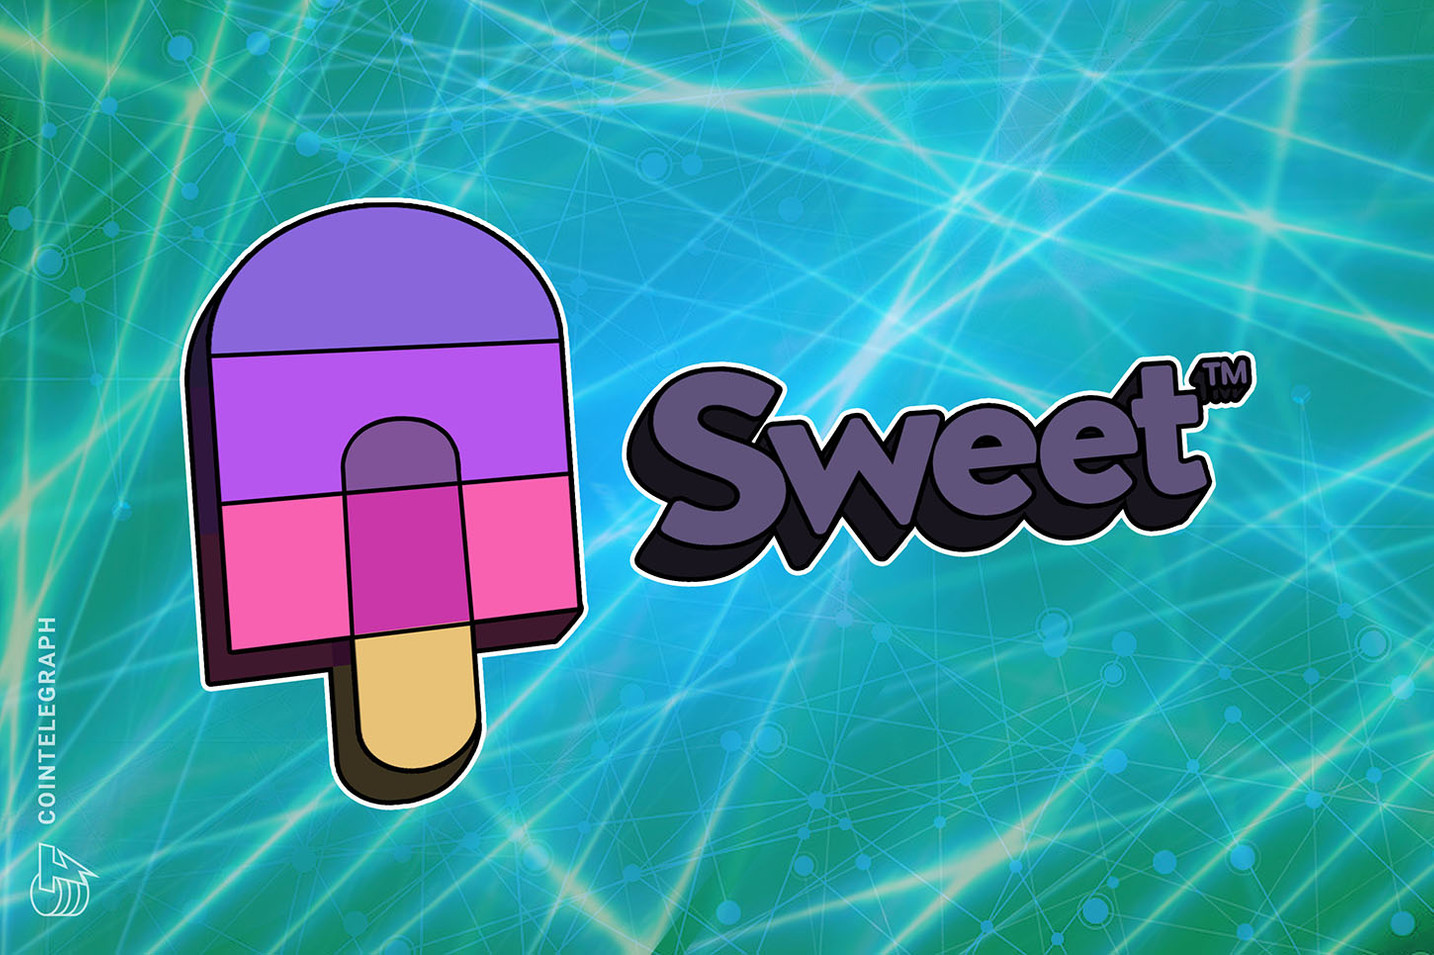 Sweet launches broad-scale NFT solution in partnership with Bitcoin.com